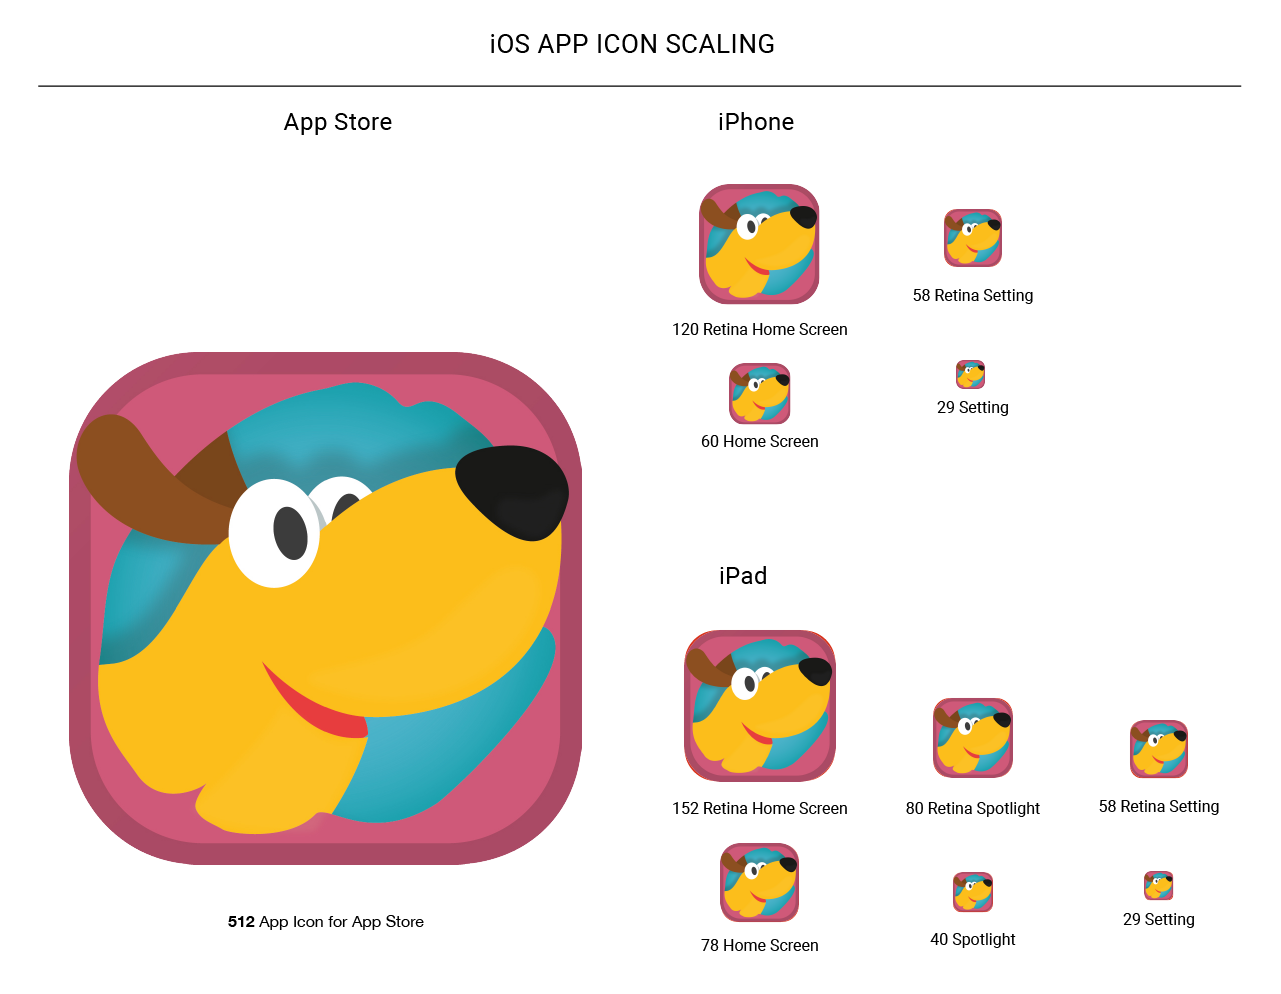 Picture depicts IOS App icon scaling needs